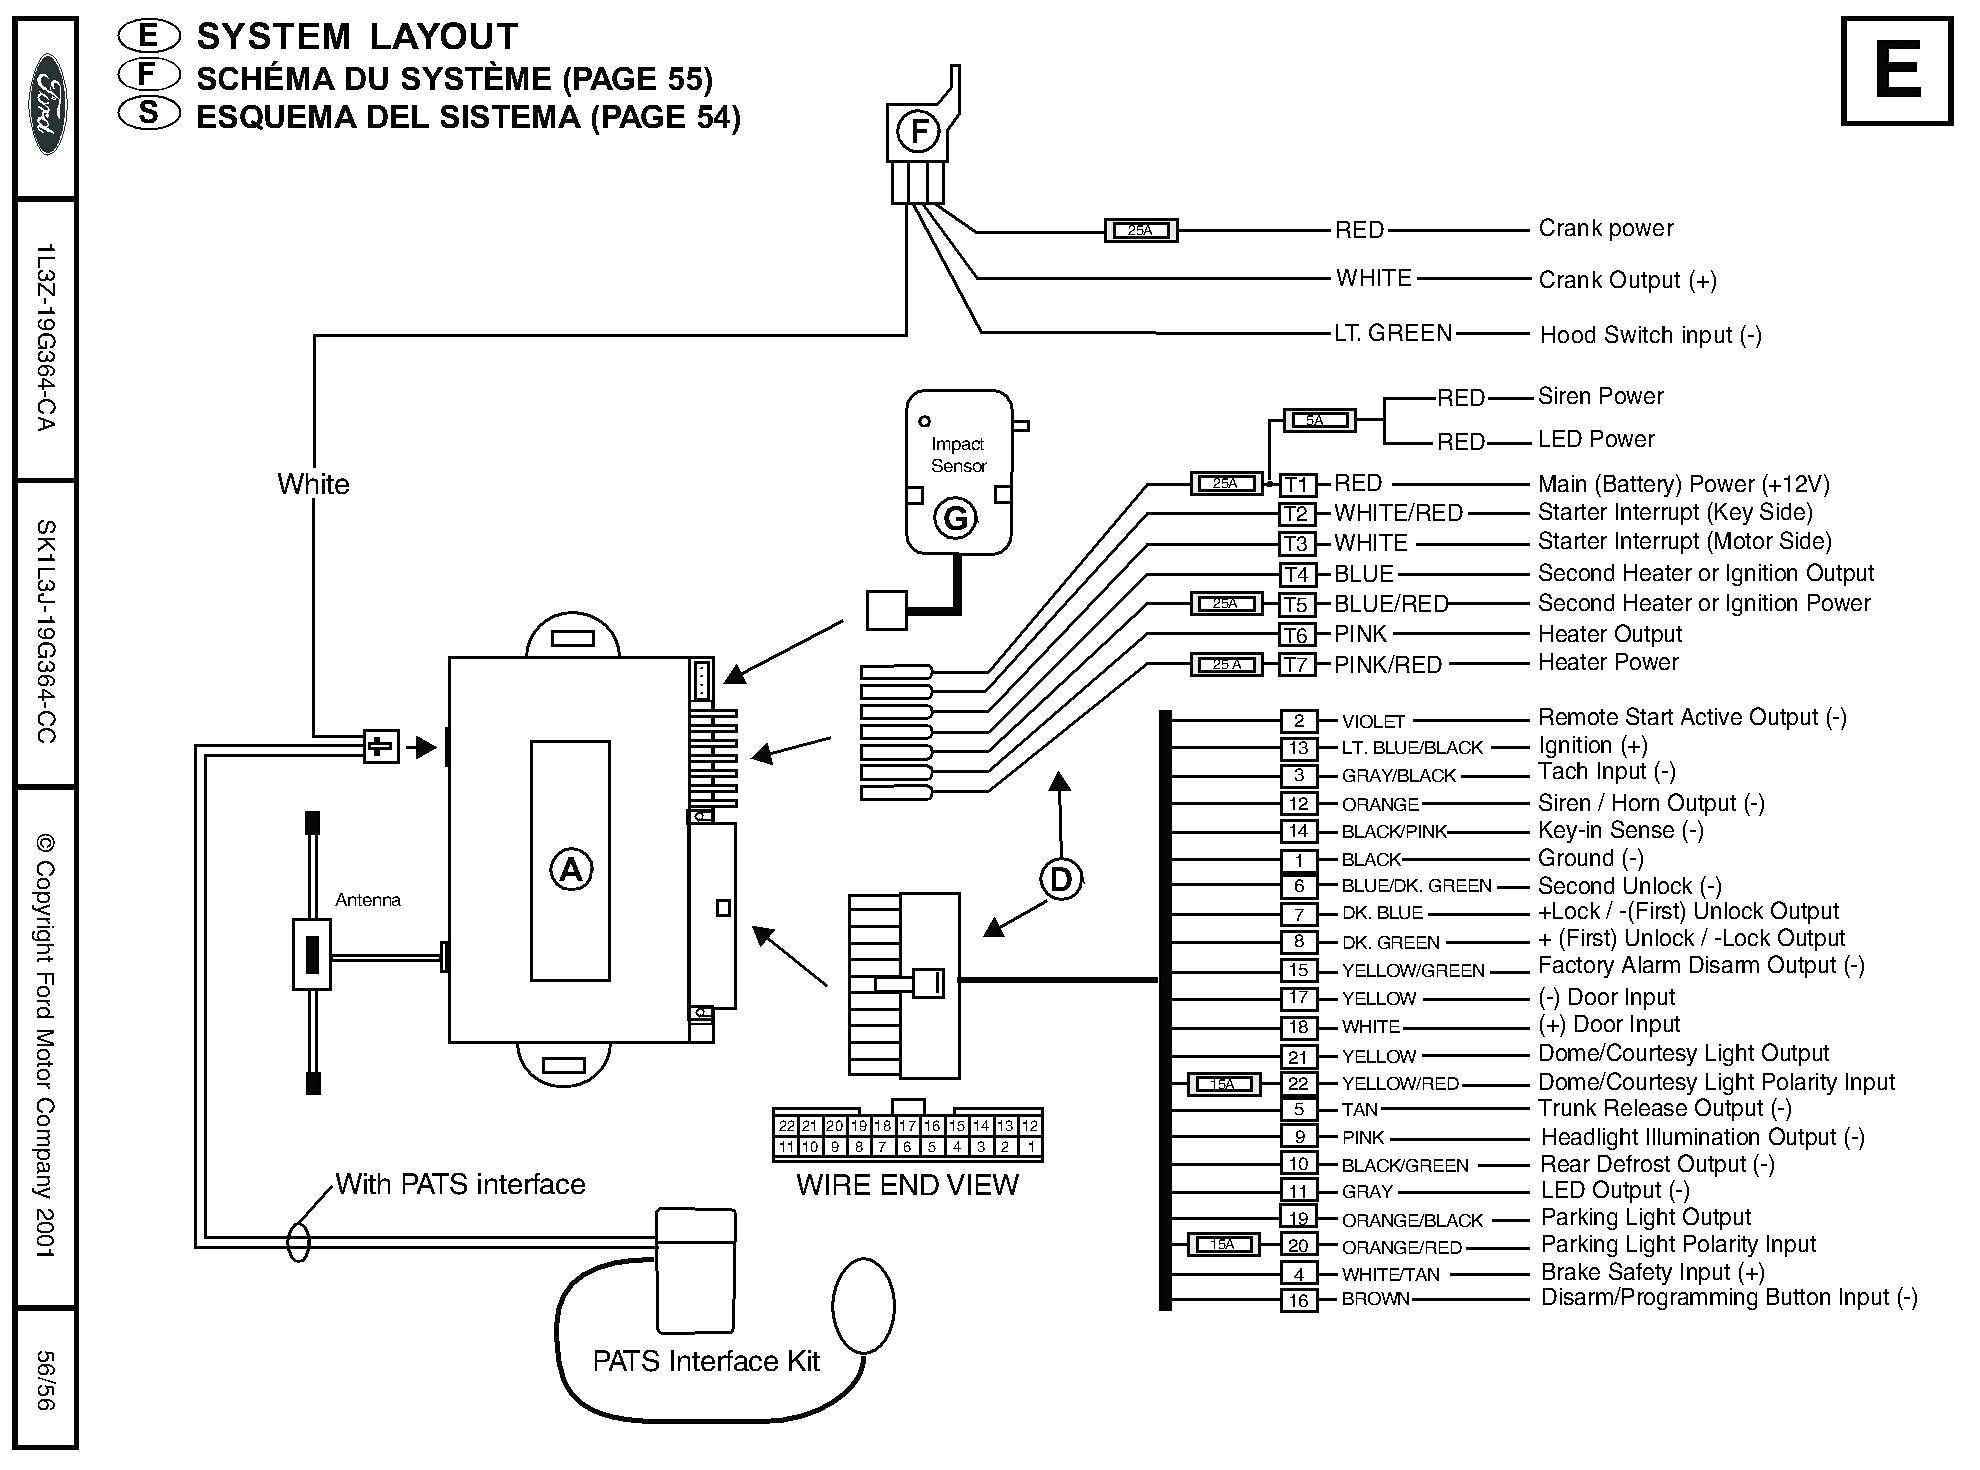 Auto Wiring Diagrams Online And Free Electrical Diagram 2006 Yamaha Raptor Schematic Related With